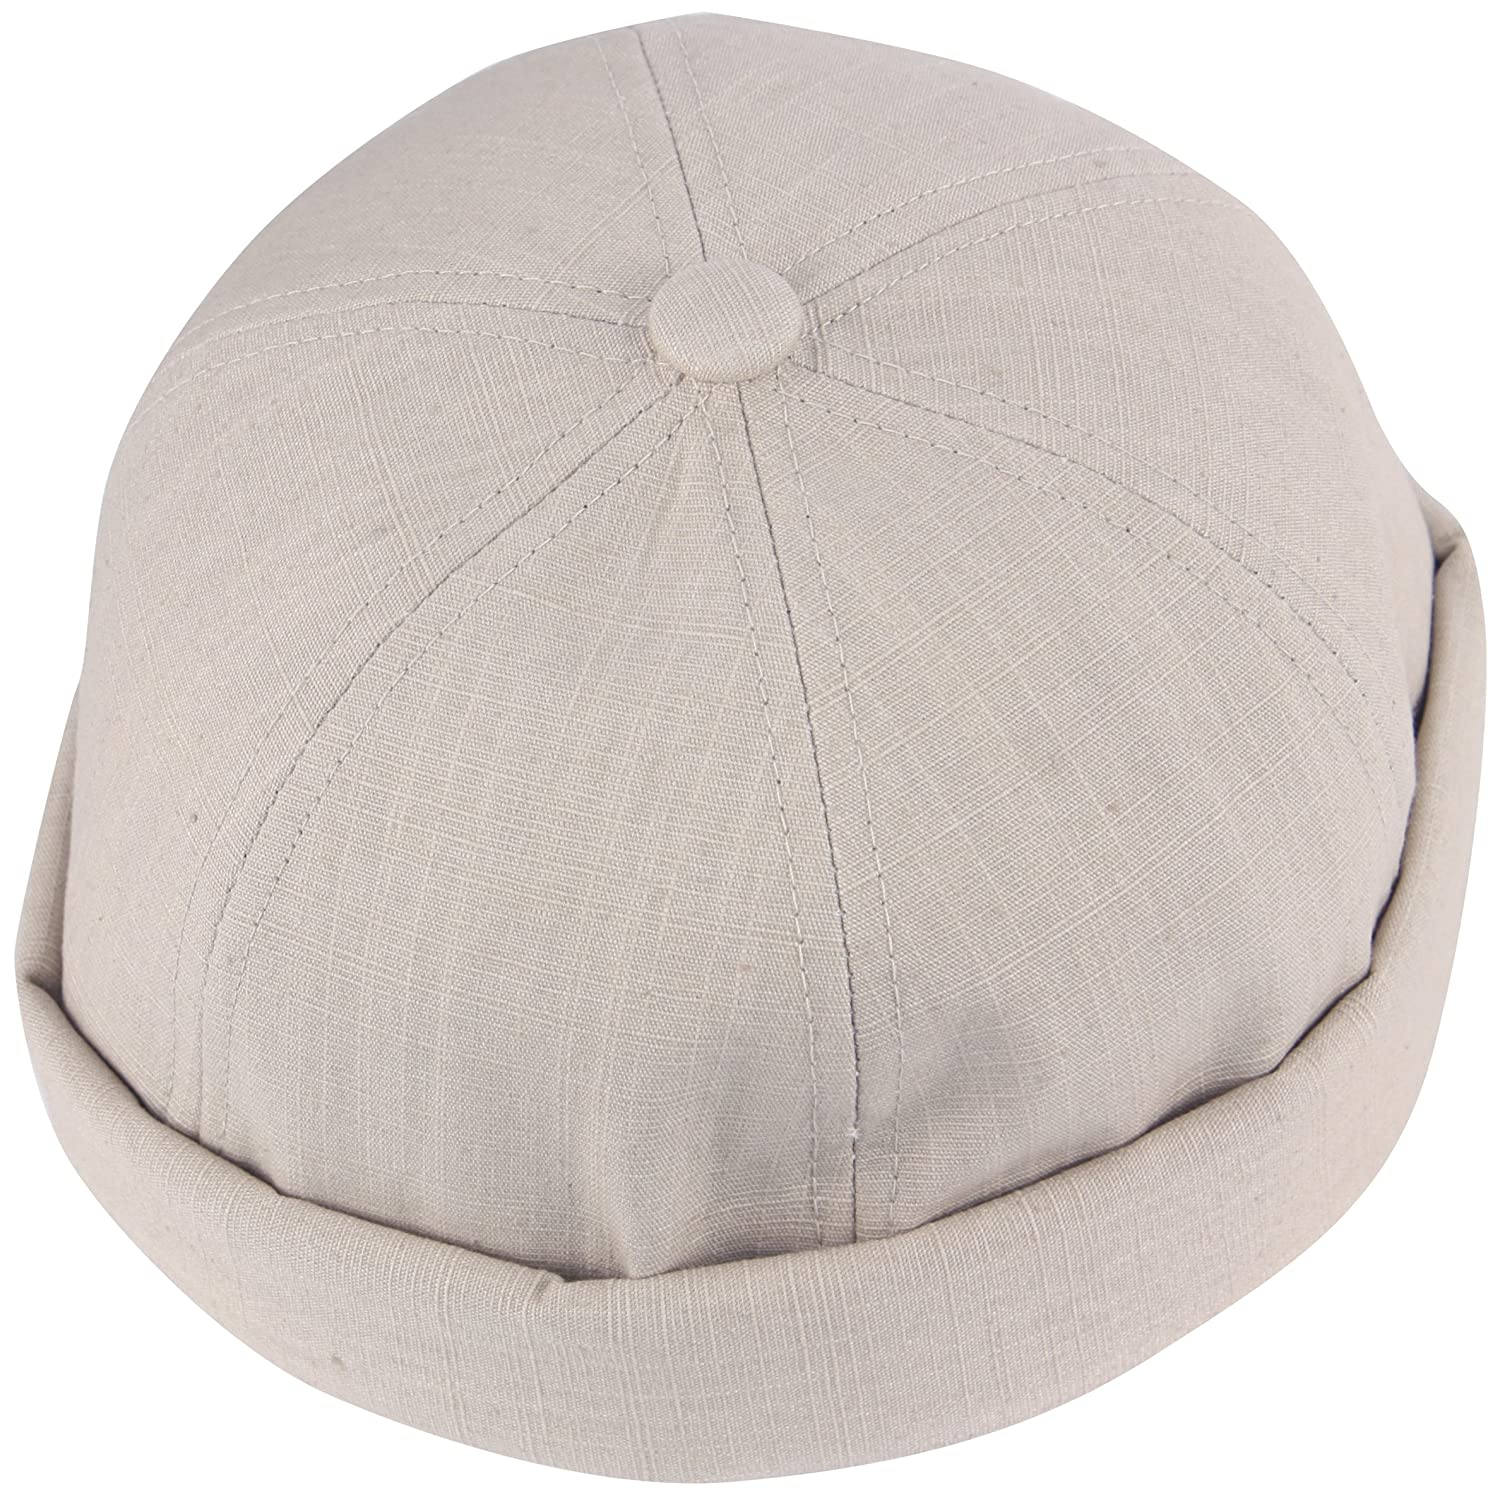 dac8593decabd RaOn B408 Watch Cap Beanie Style Empty Plain No Bill Fashion Baseball Hat  Truckers (Beige) at Amazon Men s Clothing store